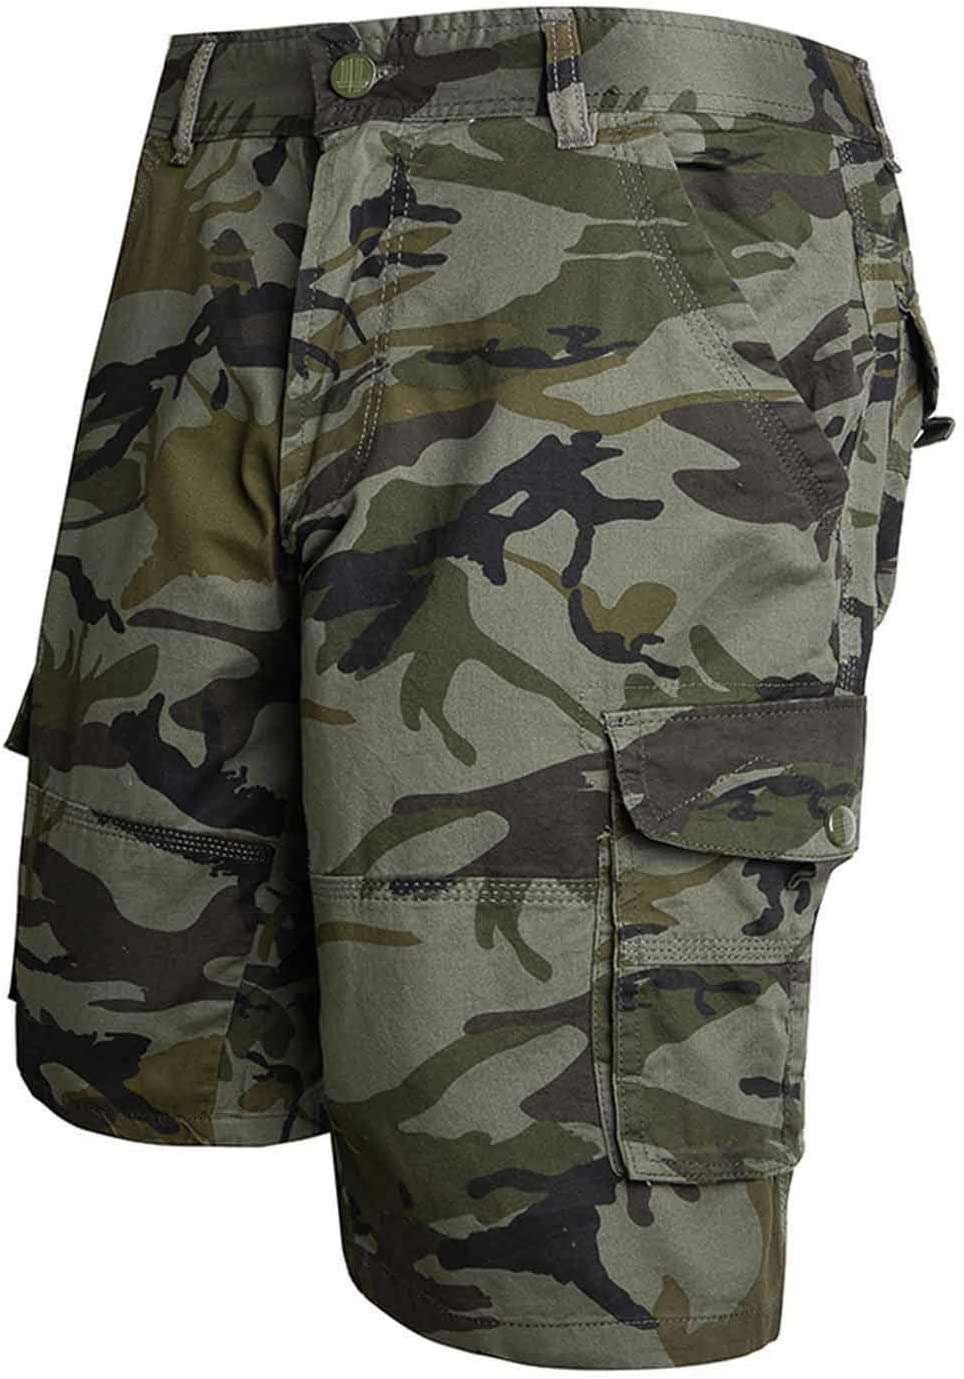 Reaowazo Mens Cargo Shorts Cotton Military Camo with Multi Pockets Camouflage Outdoors Pants